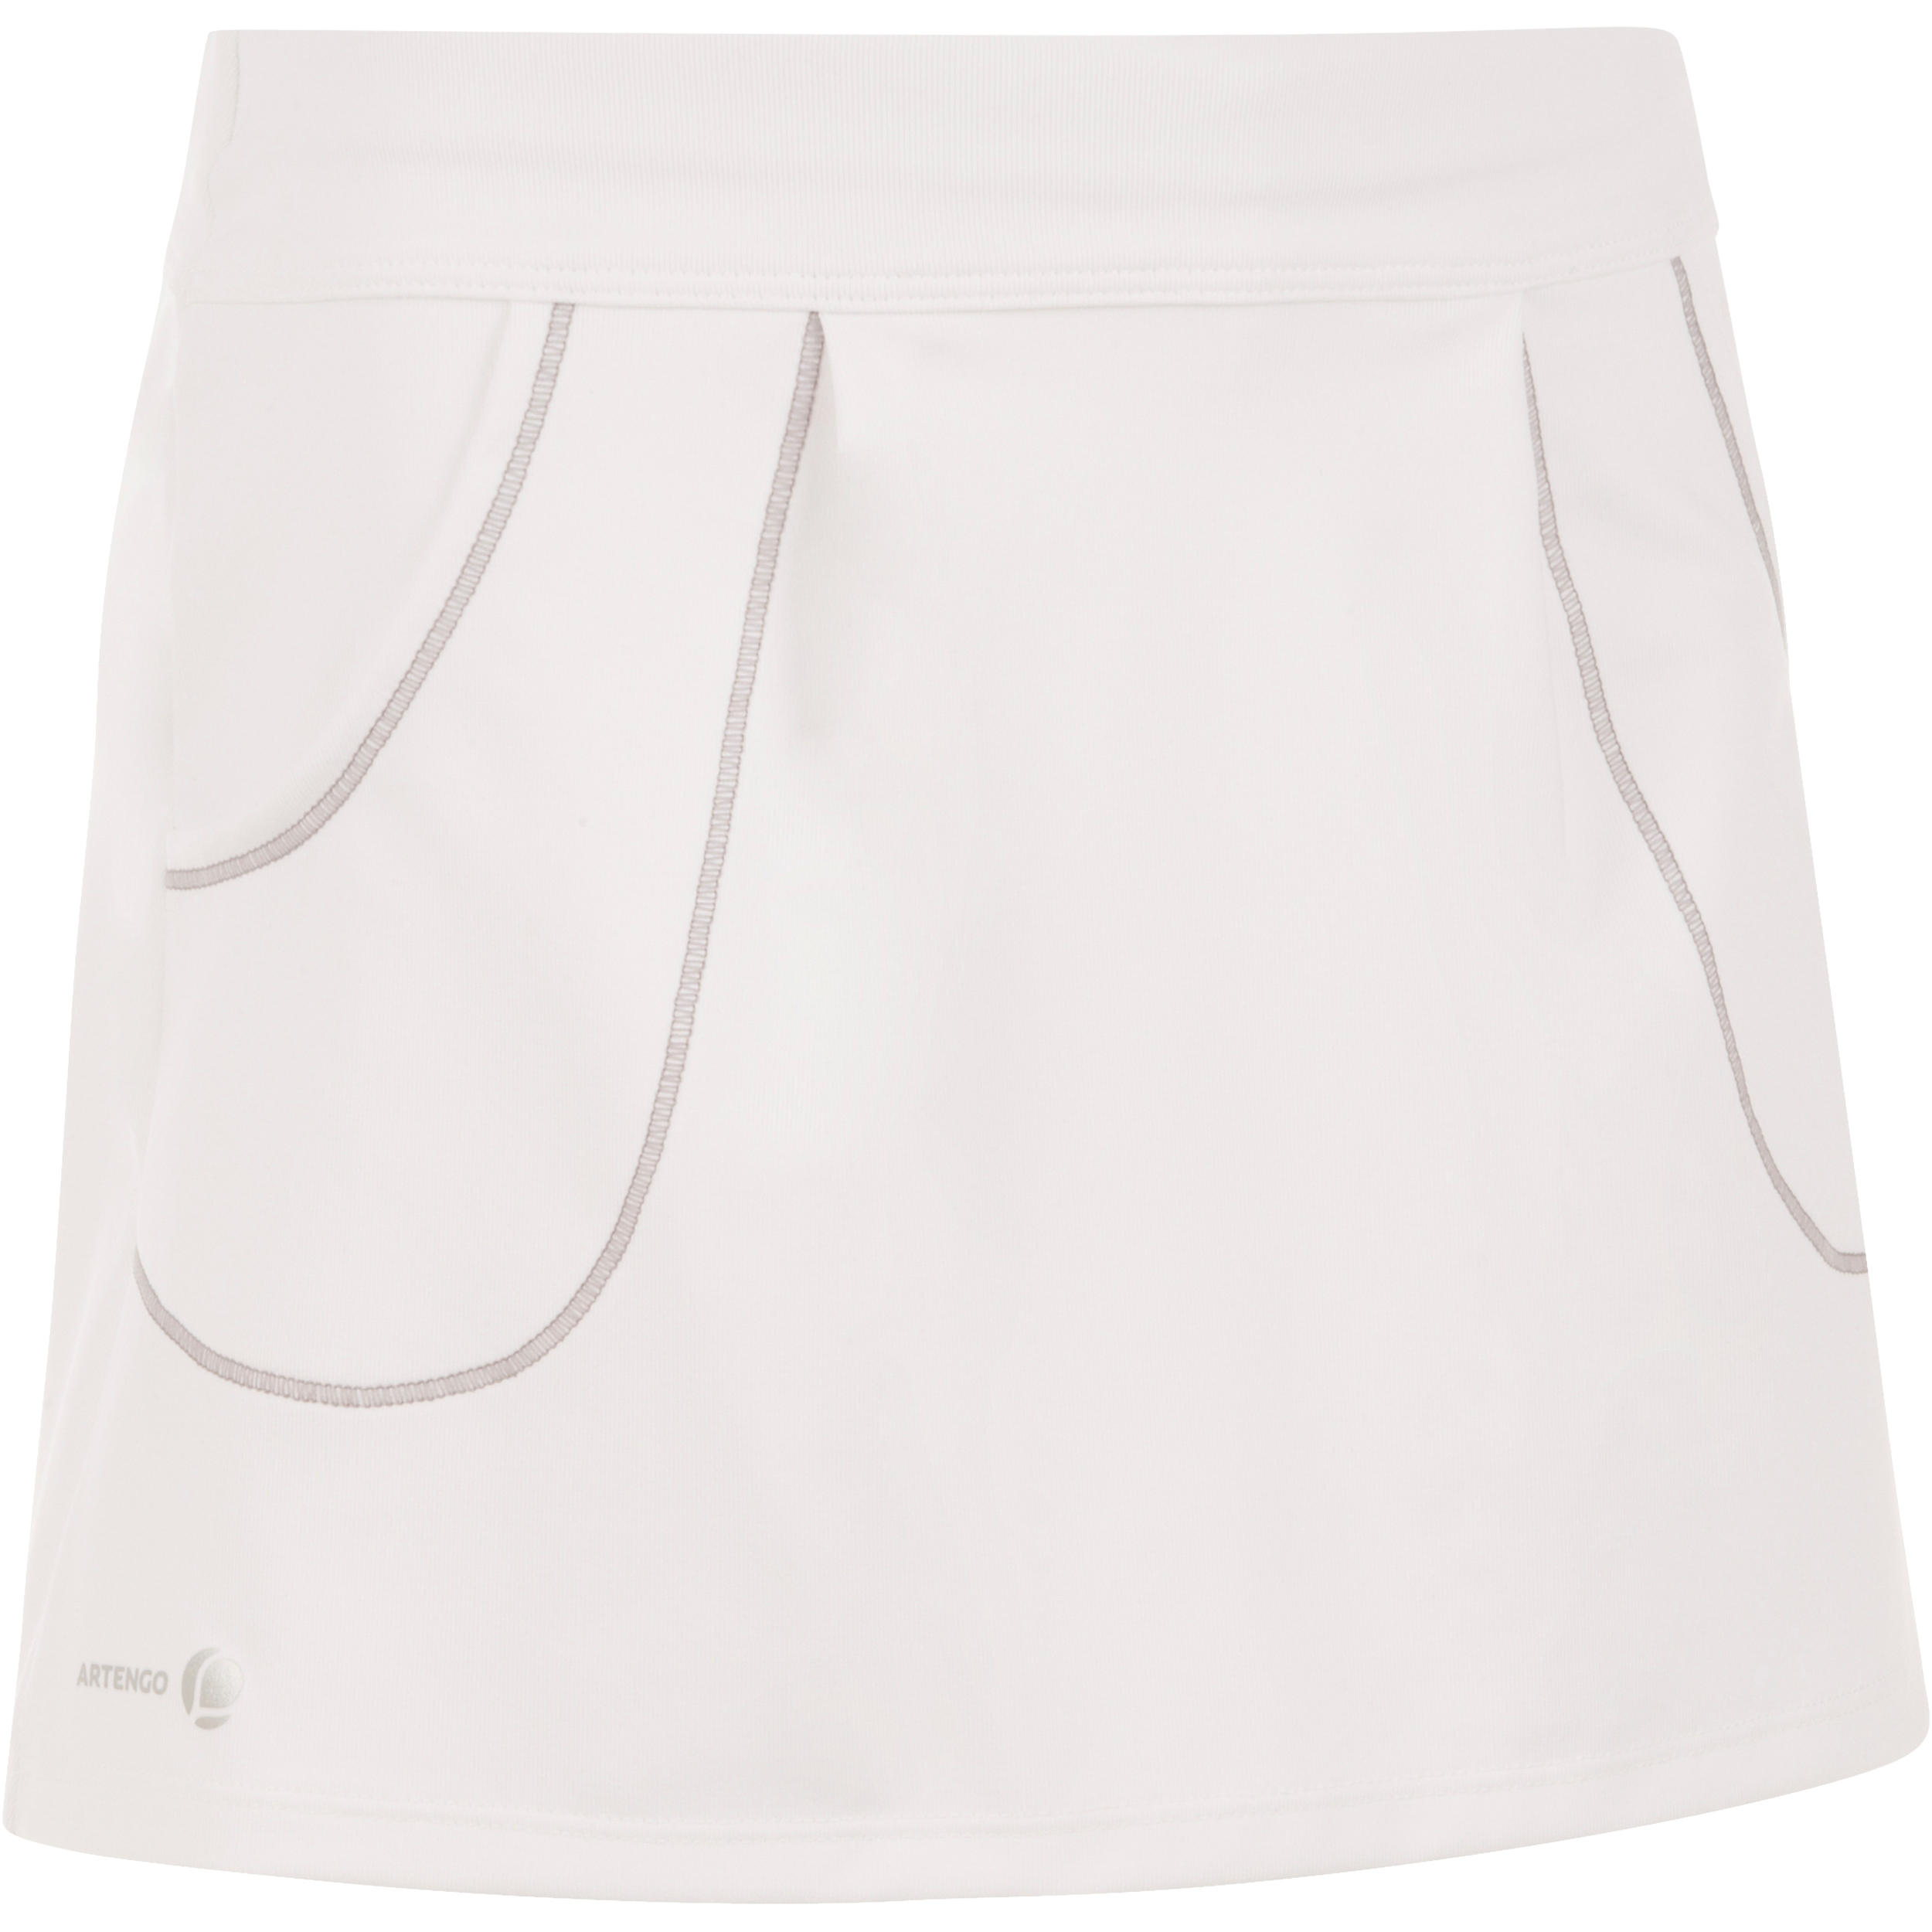 Pocket 100 Girls' Tennis Badminton Paddle Table Tennis Squash Skirt - White